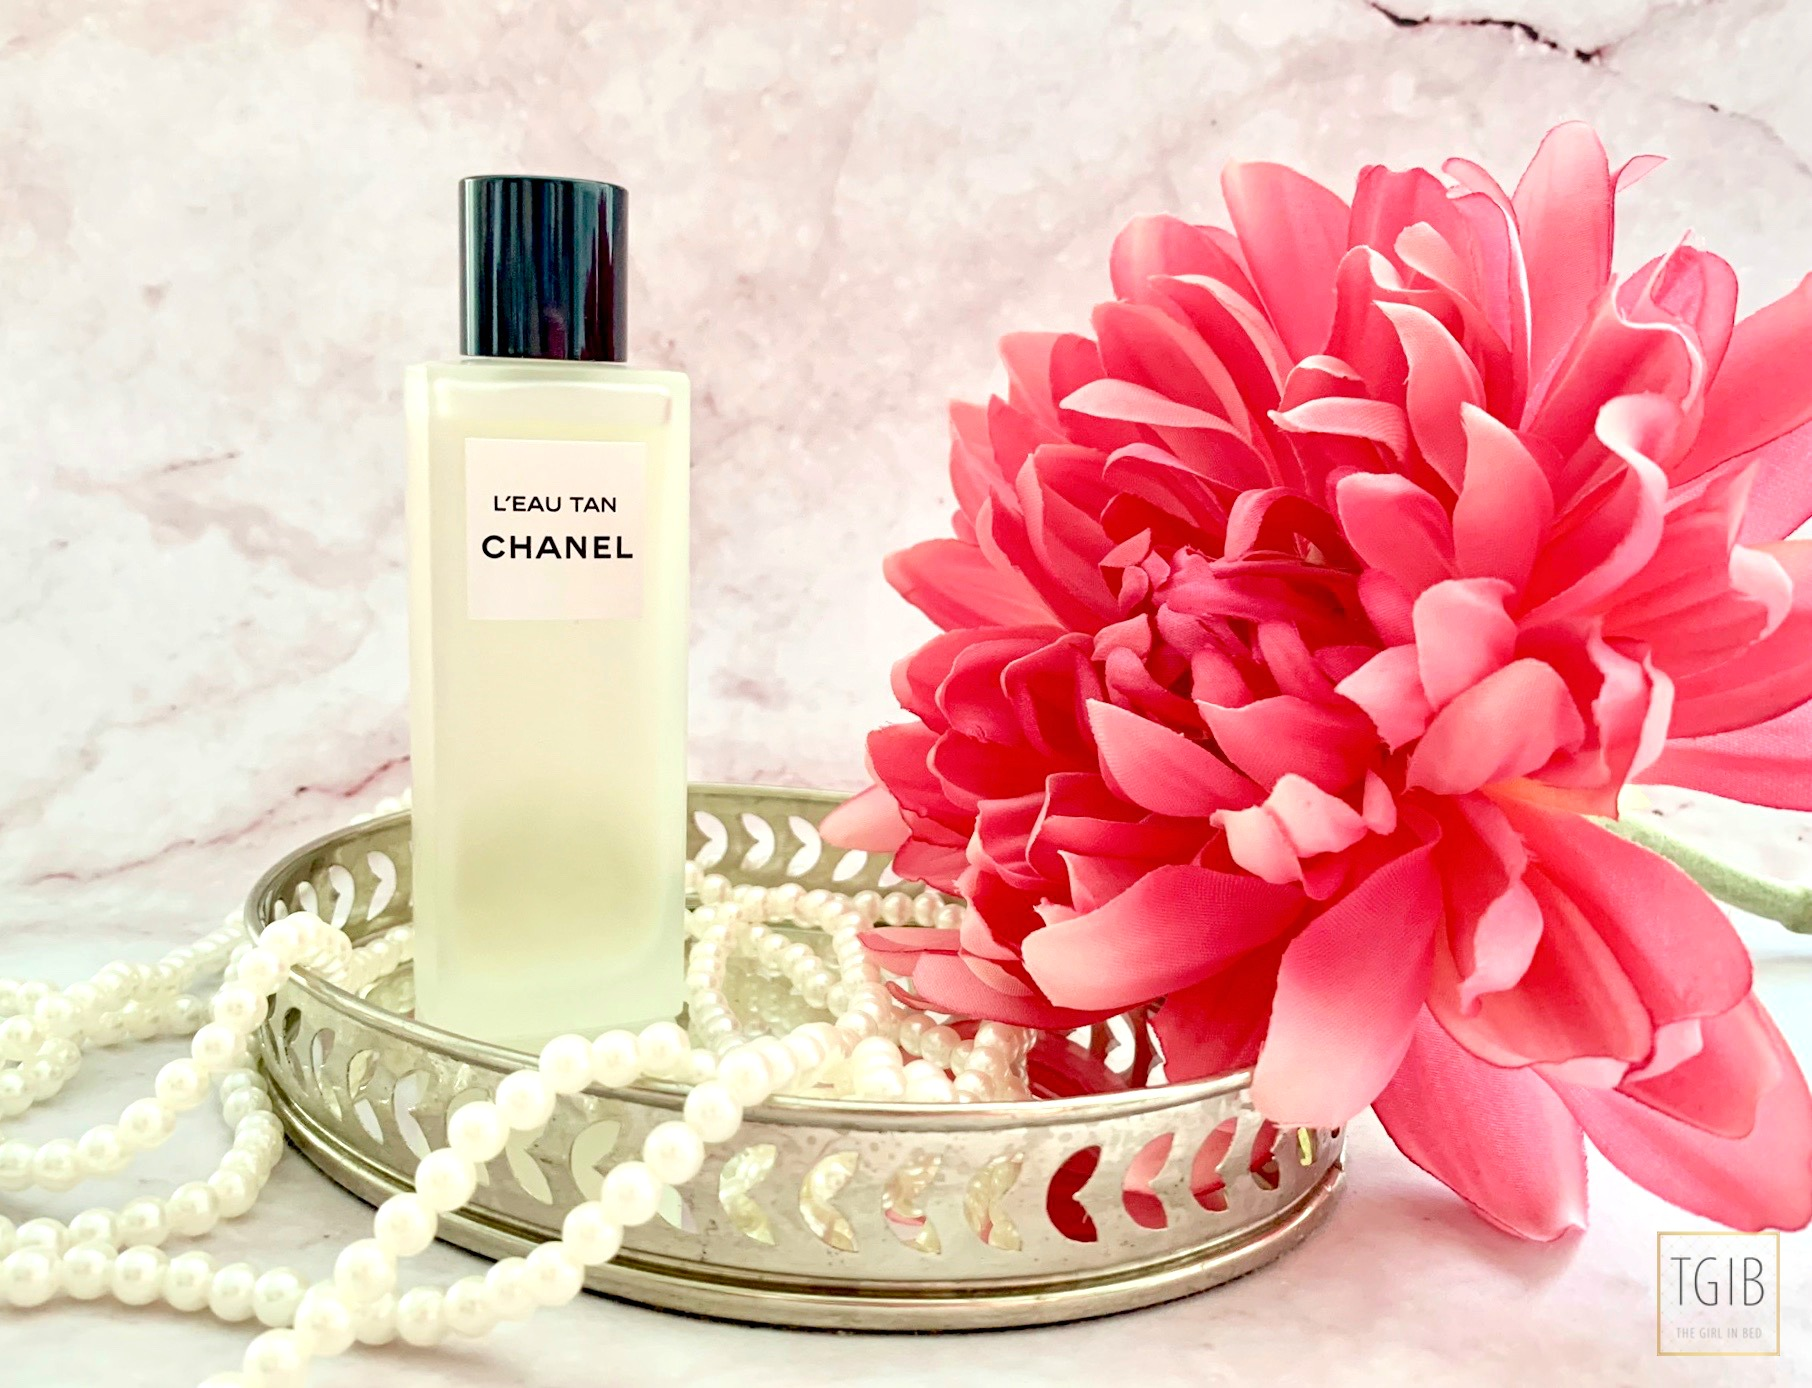 Chanel L'eau Tan Review